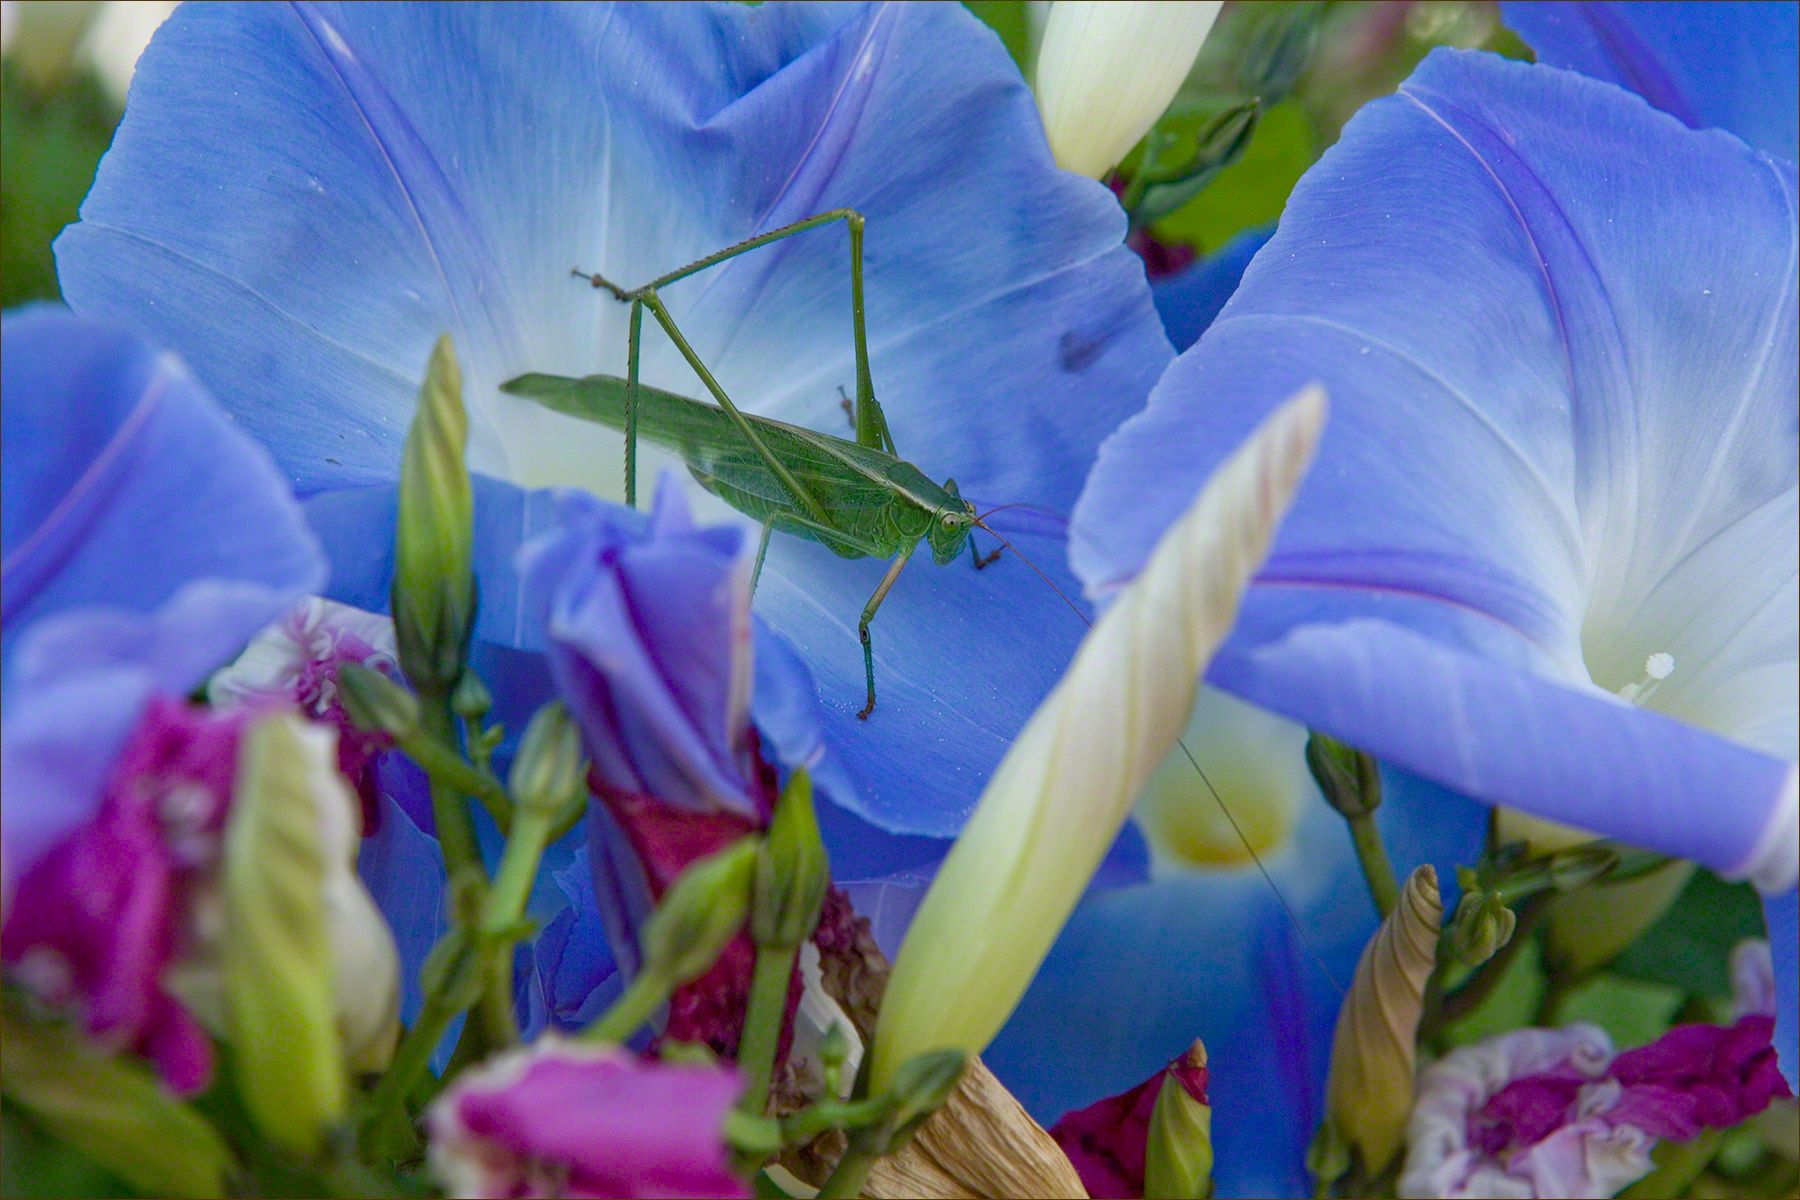 Katydid & Morning Glories